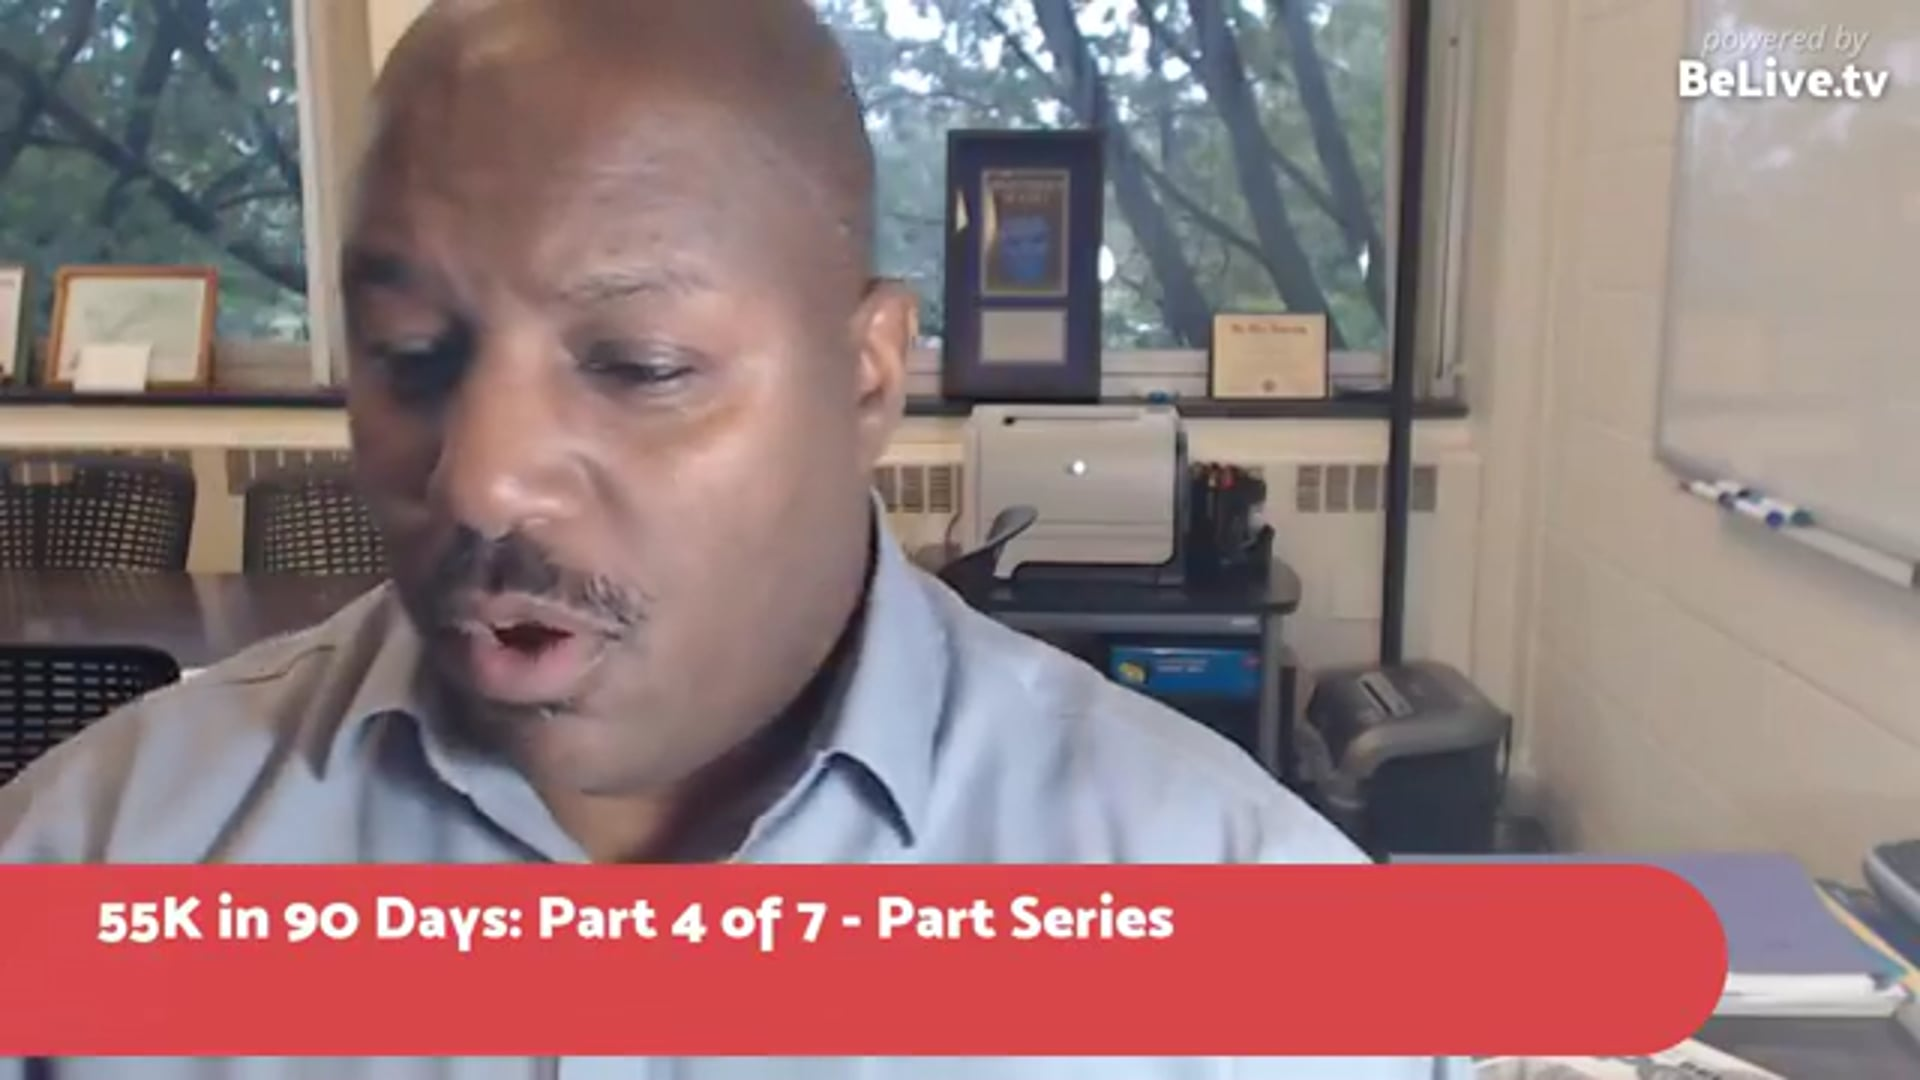 How to Generate 55K in 90 Days. Part 4- Gather Your Resources